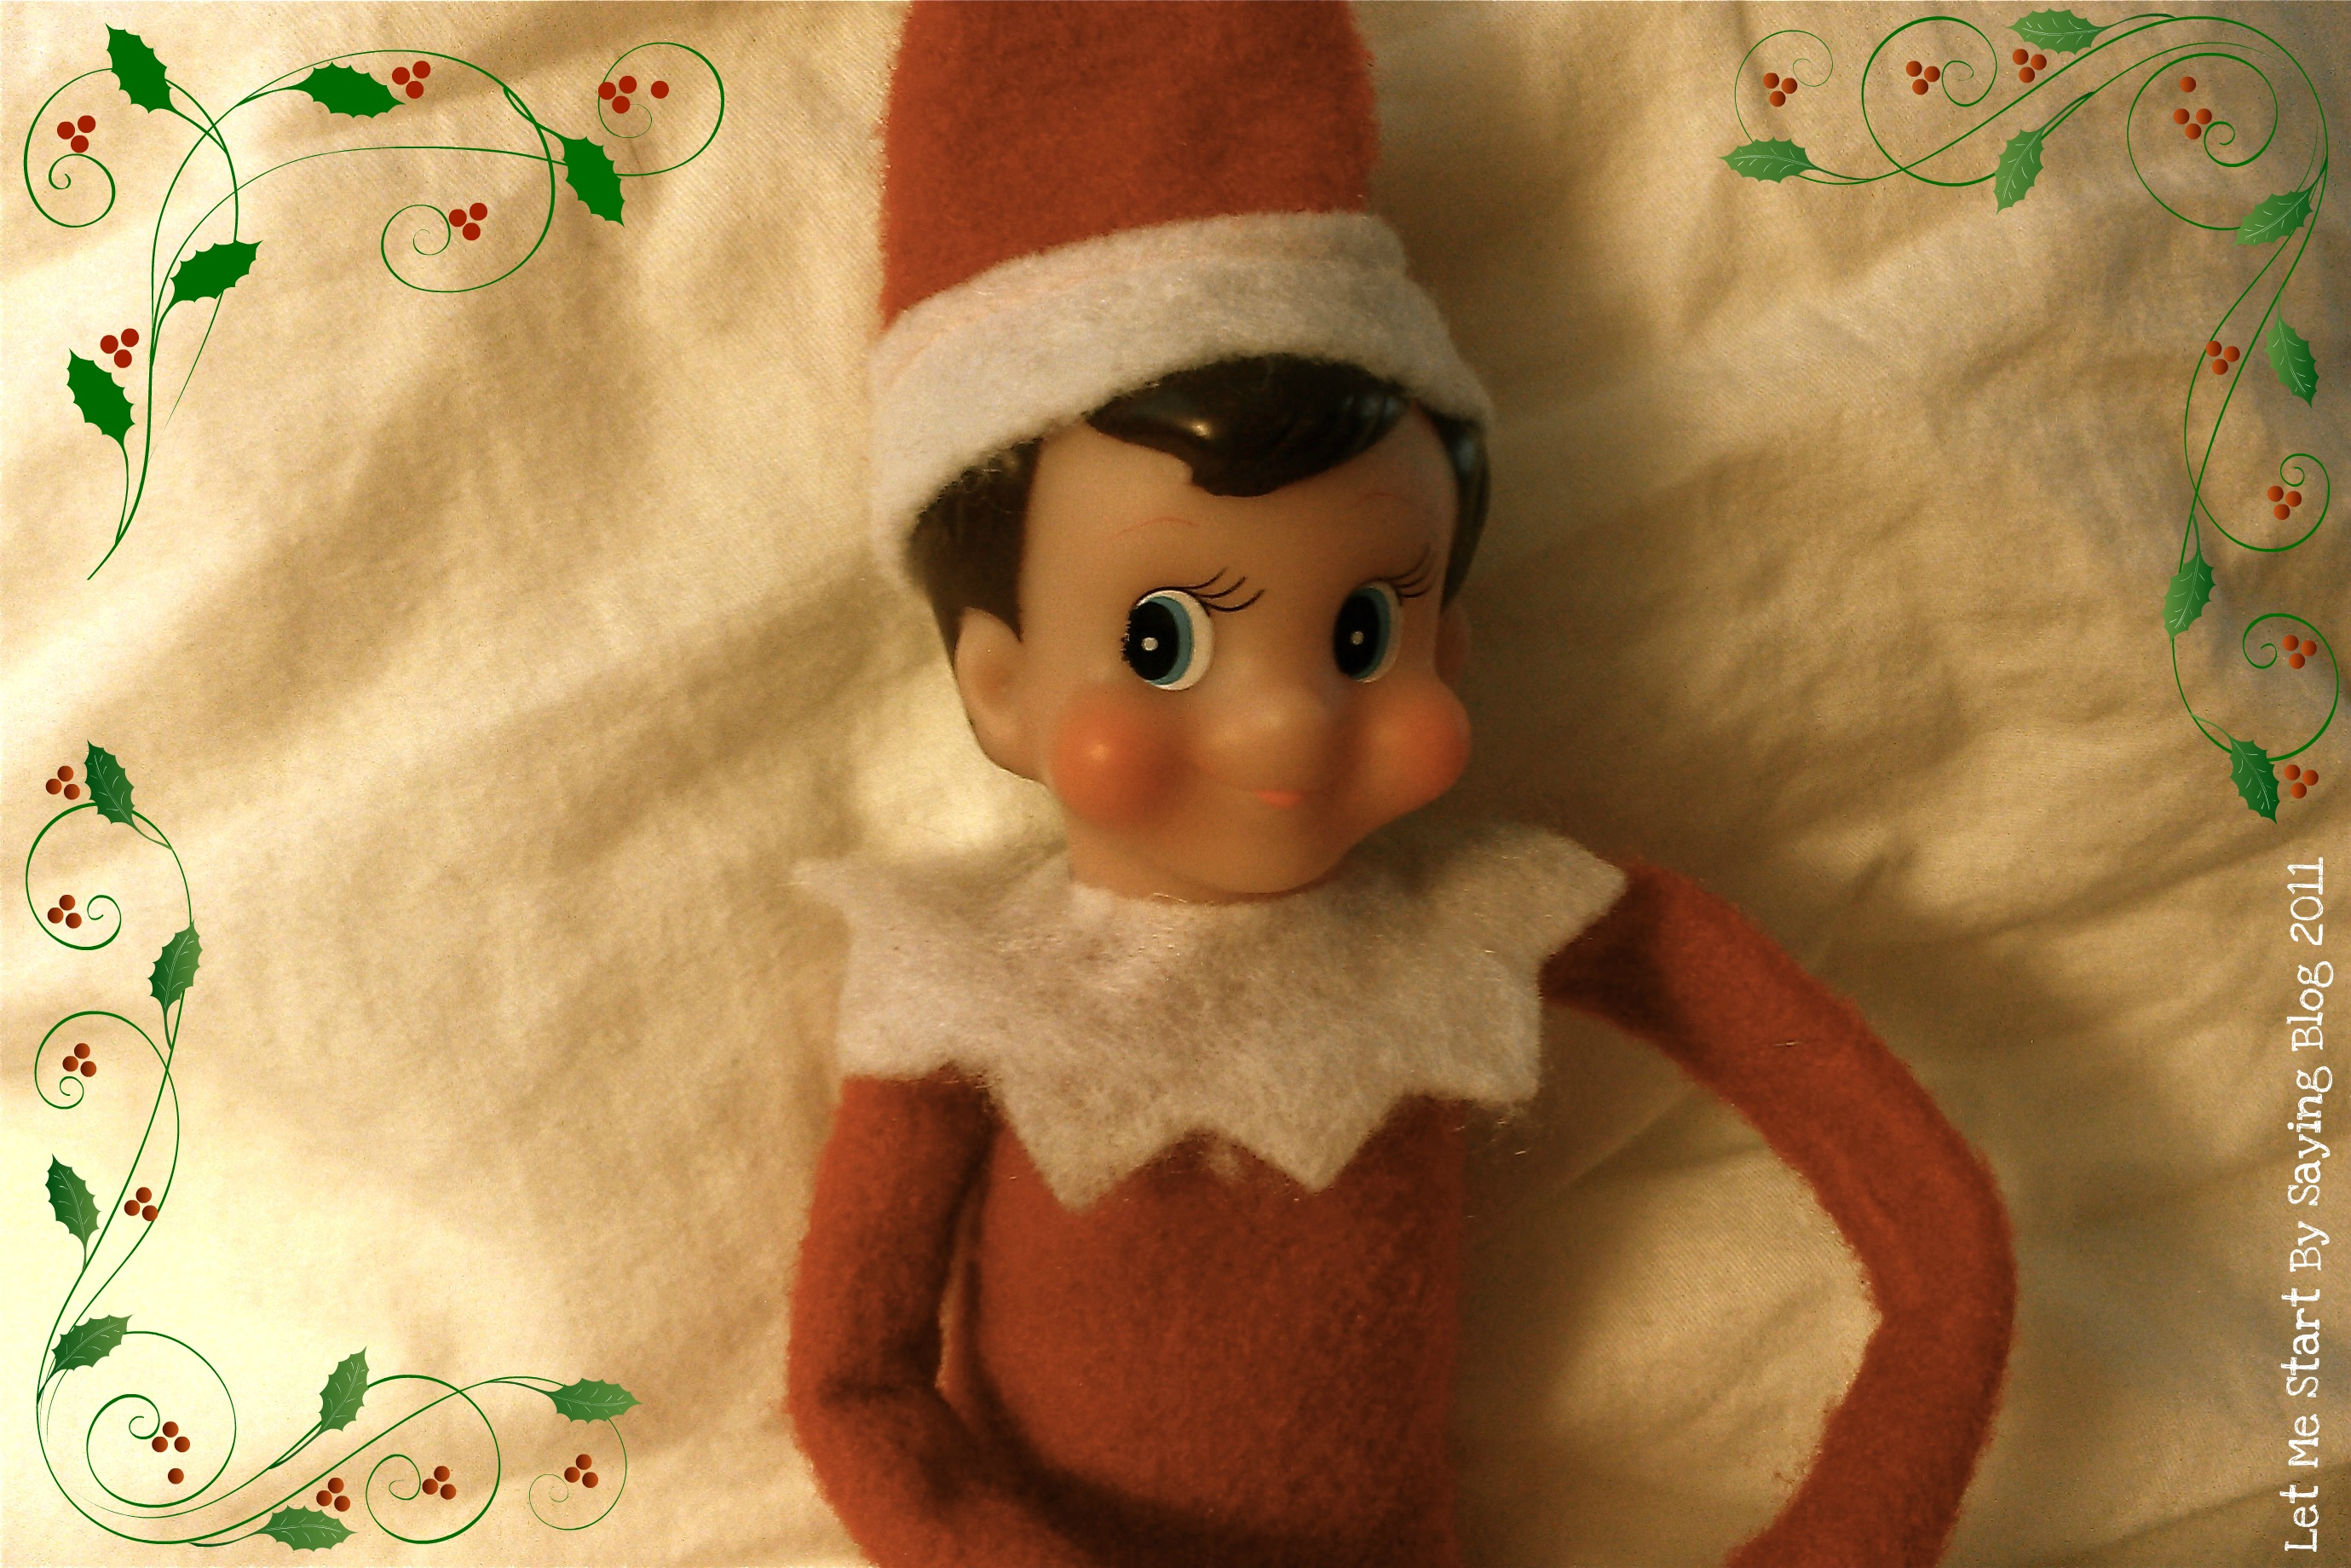 Signs your Elf on the Shelf is on the Naughty List - a funny holiday humor post featuring a bad elf! by @letmestart